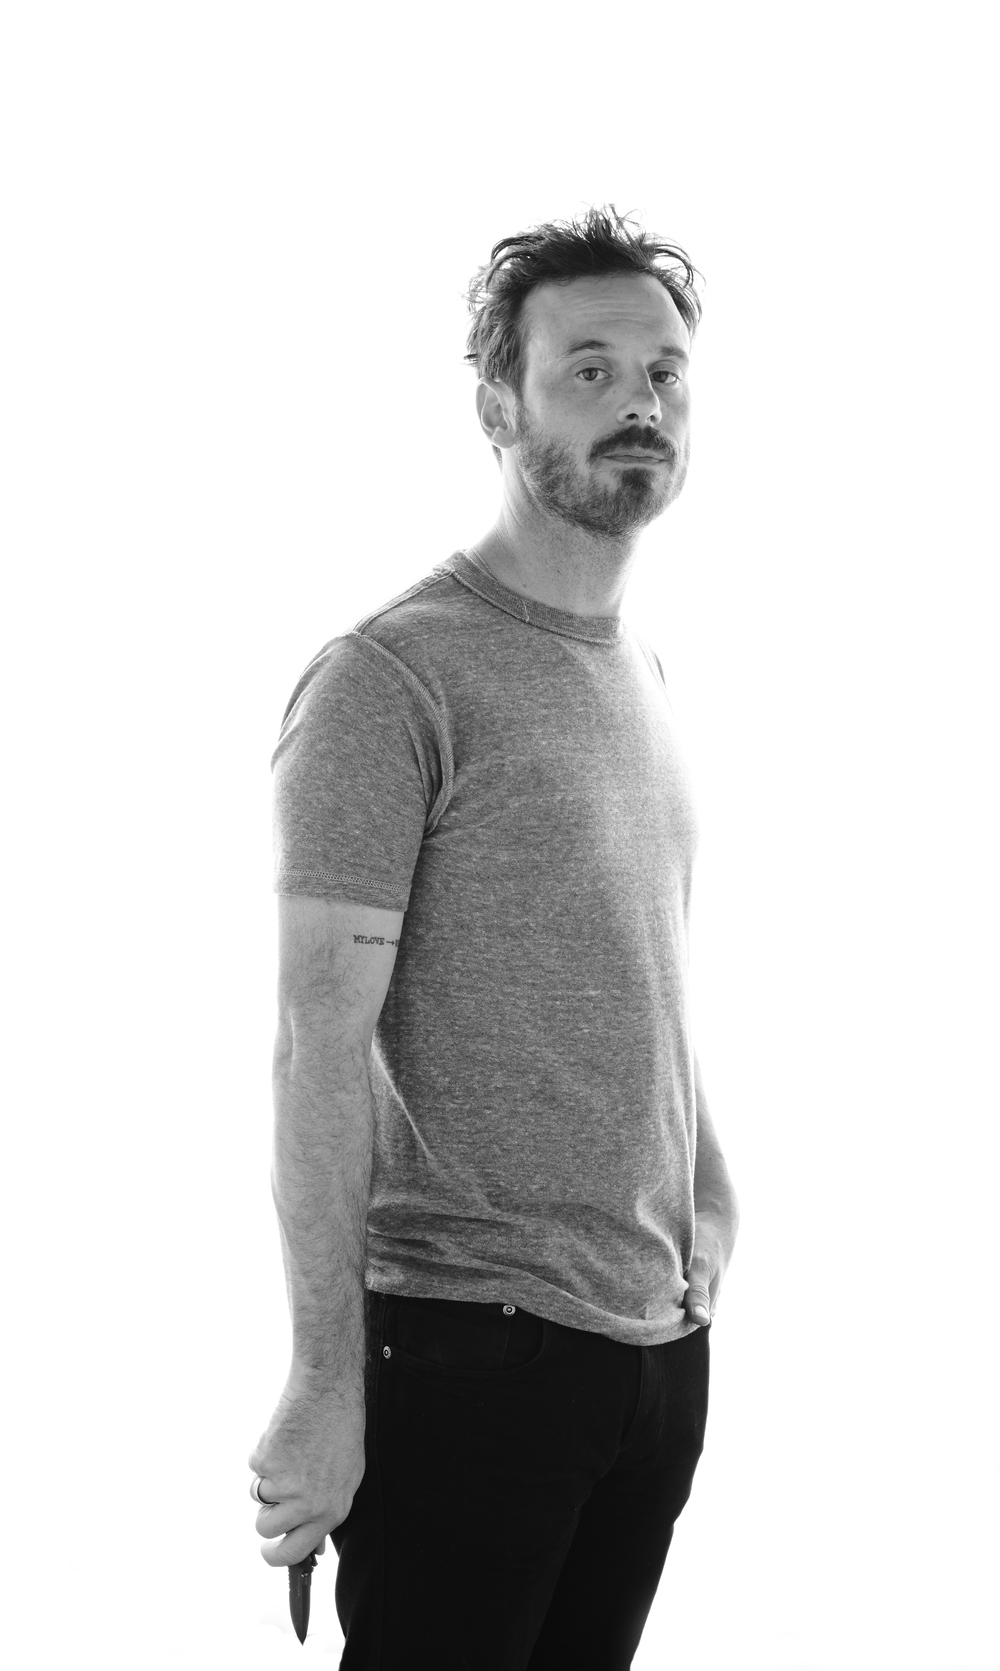 scoot_mcnairy_058.jpg